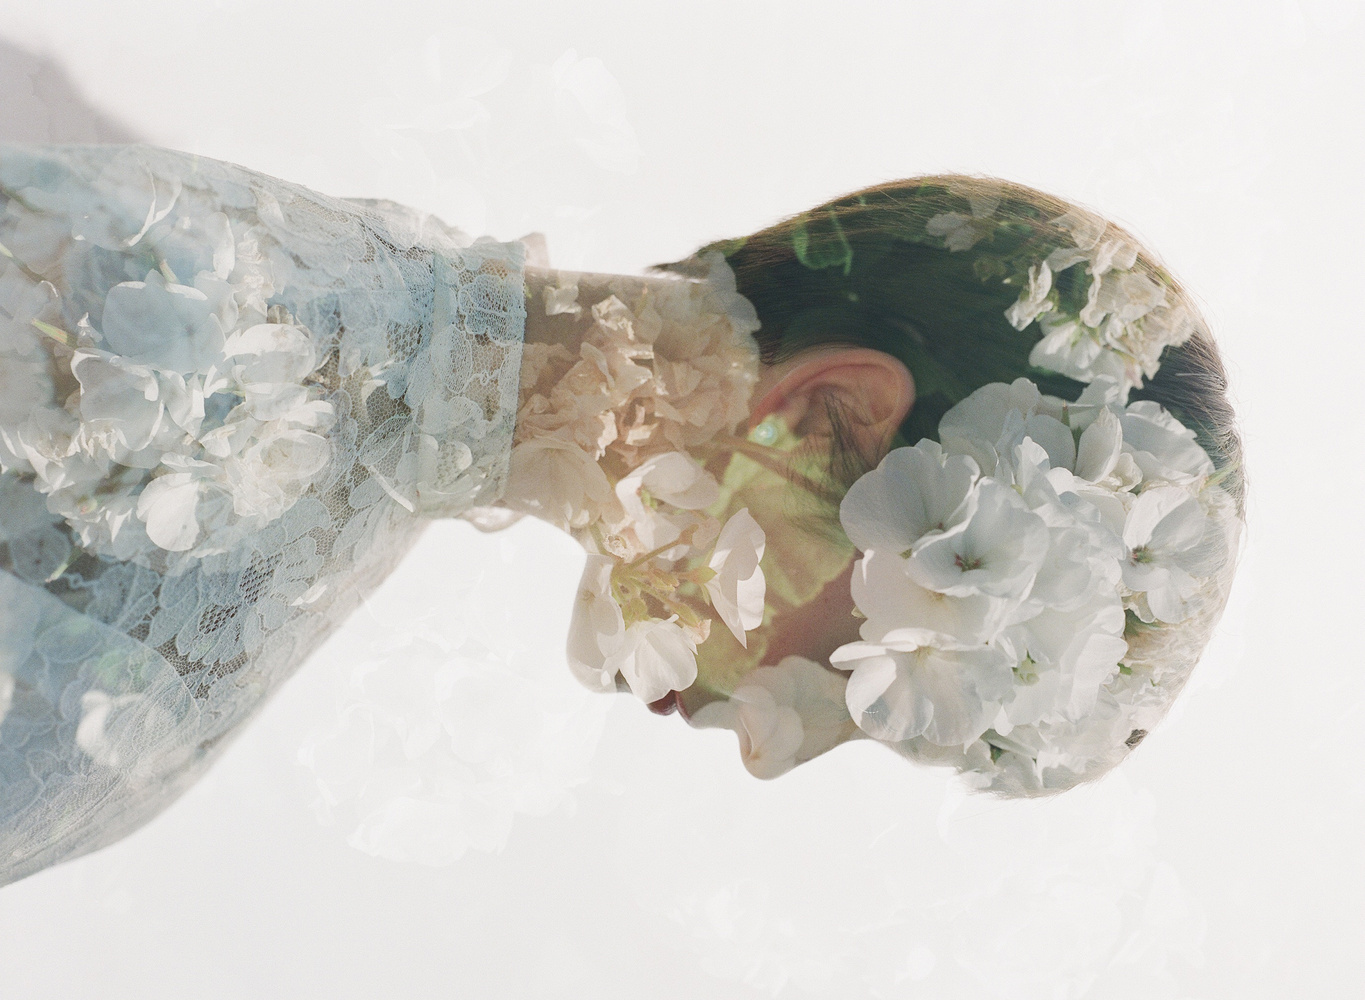 Bridal double exposure on film by Samuel Hodges